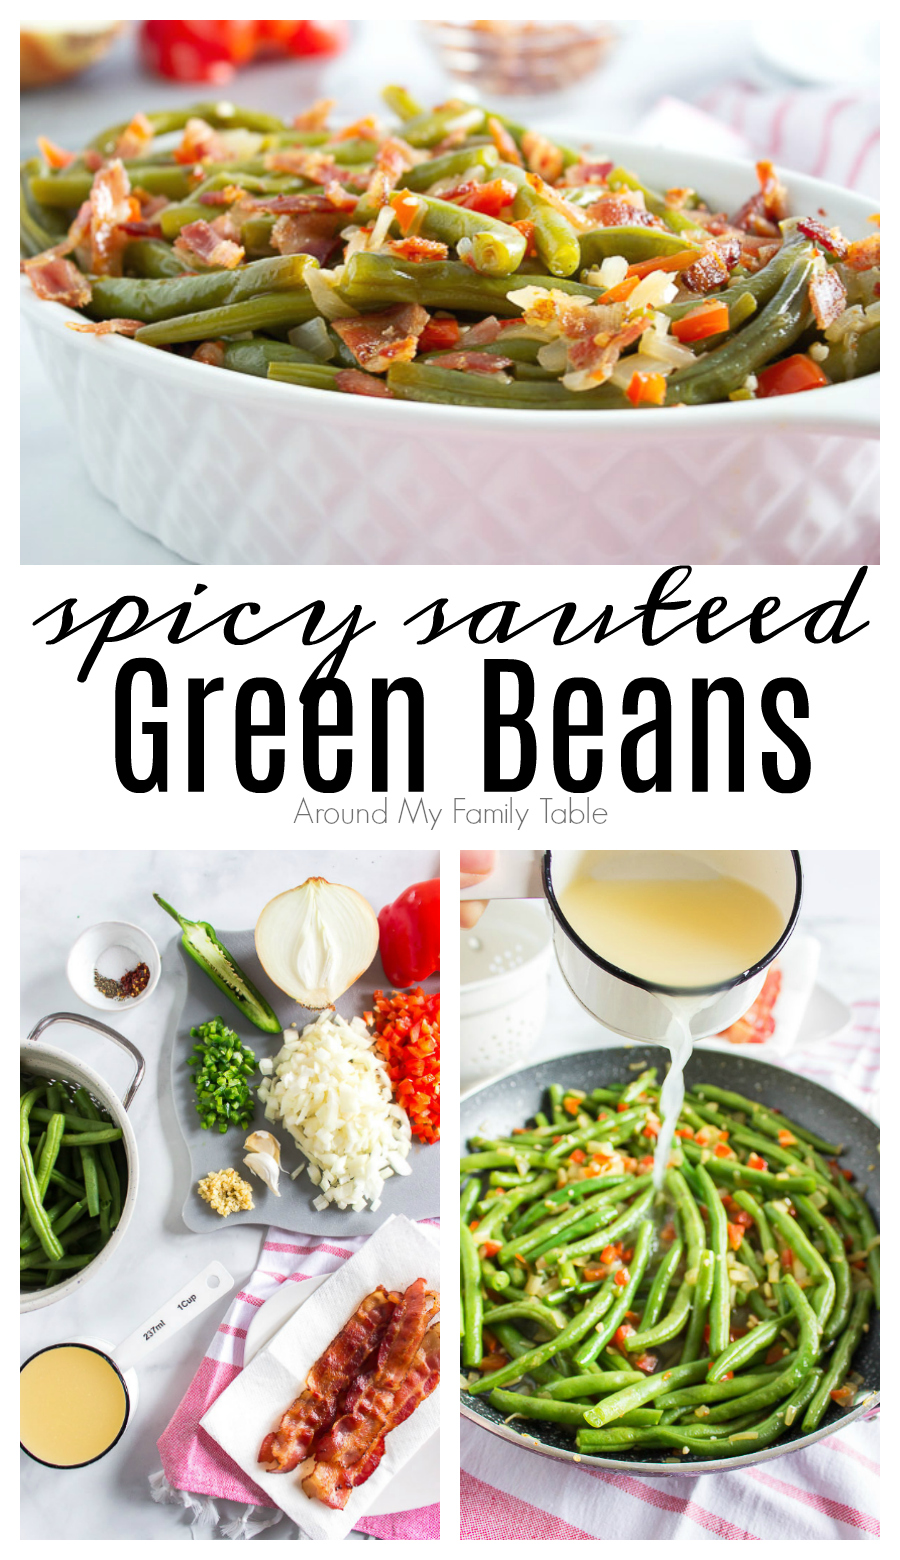 Sauteed green beans with bacon, veggies and spicy peppers is delicious and easy to prepare. Make this recipe to replace green bean casserole! via @slingmama